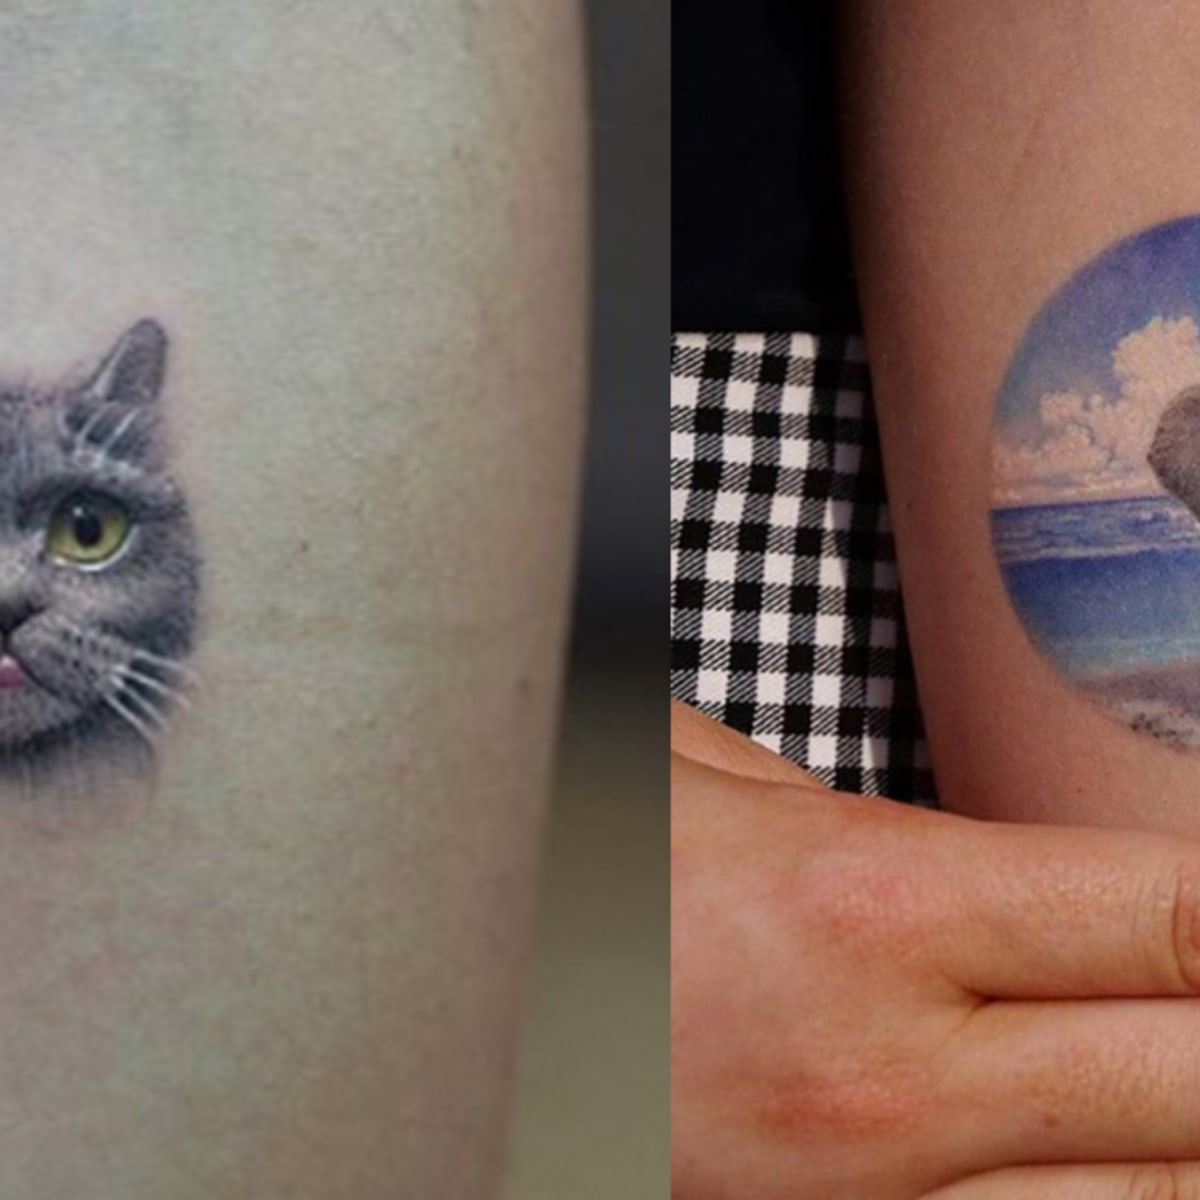 75 Colorful Micro Tattoos By Some Of The World S Best Artists Tattoo Ideas Artists And Models